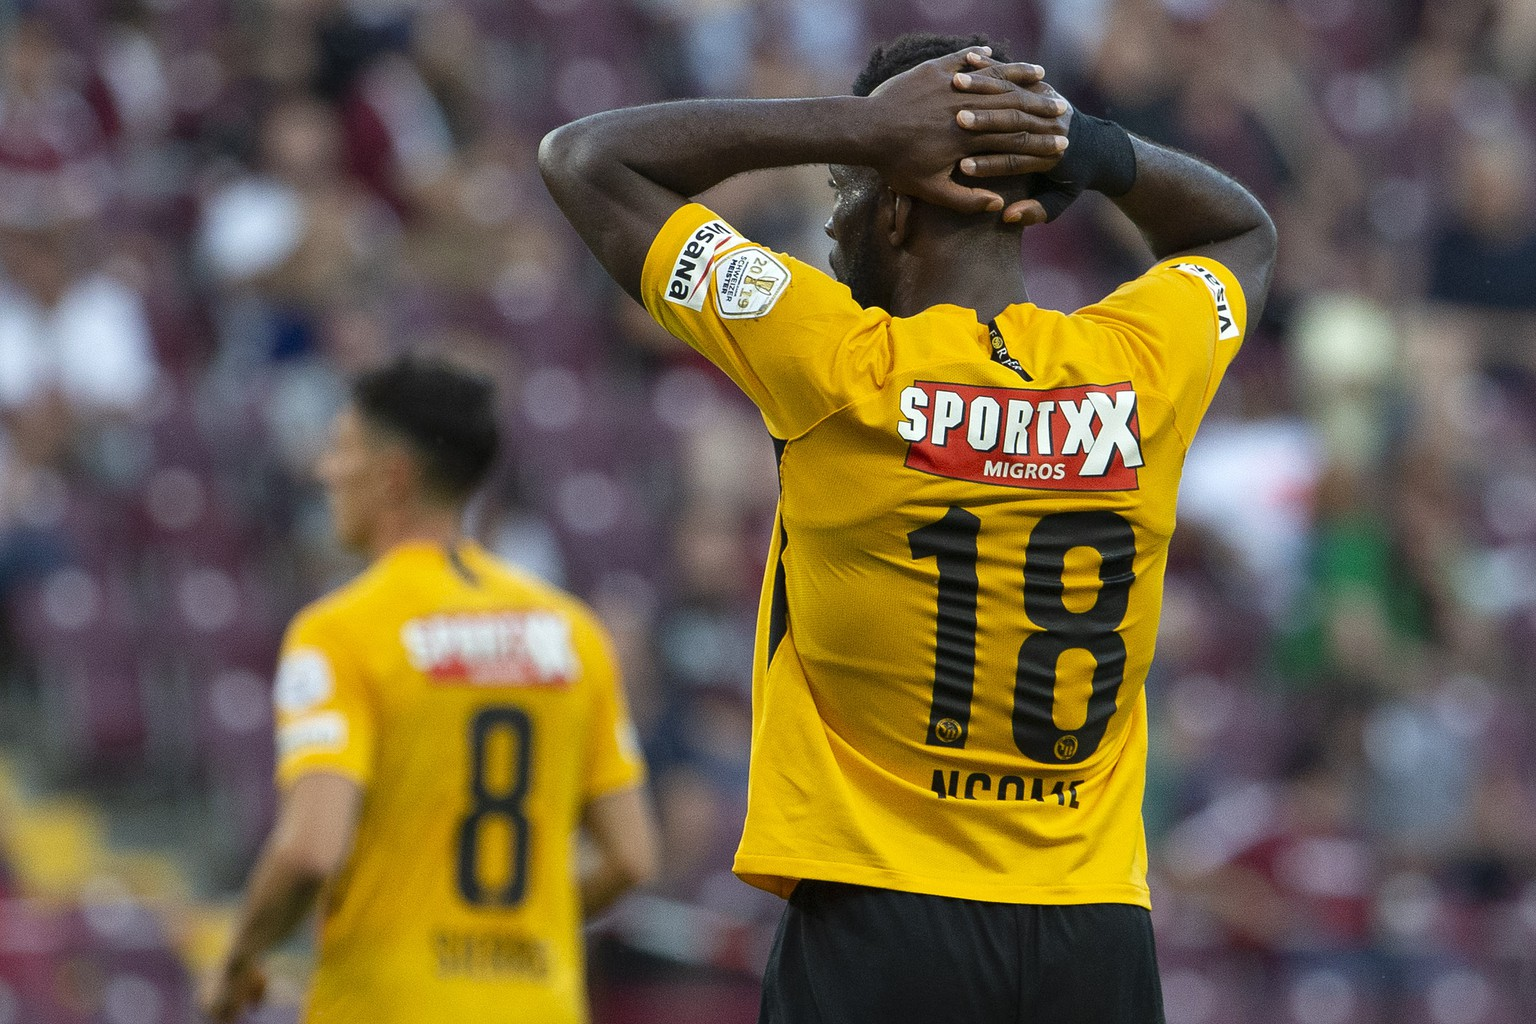 Young Boys' forward Jean-Pierre Nsame #18 reacts after missing a goal, during the Super League soccer match of Swiss Championship between Servette FC and BSC Young Boys, at the Stade de Geneve stadium, in Geneva, Switzerland, Tuesday, June 30, 2020. All Super League soccer matches of Swiss Championship are played to behind the semi closed doors (only 1000 persons can be present in the stadium) due to preventive measure against a second wave of the coronavirus COVID-19. (KEYSTONE/Salvatore Di Nolfi)